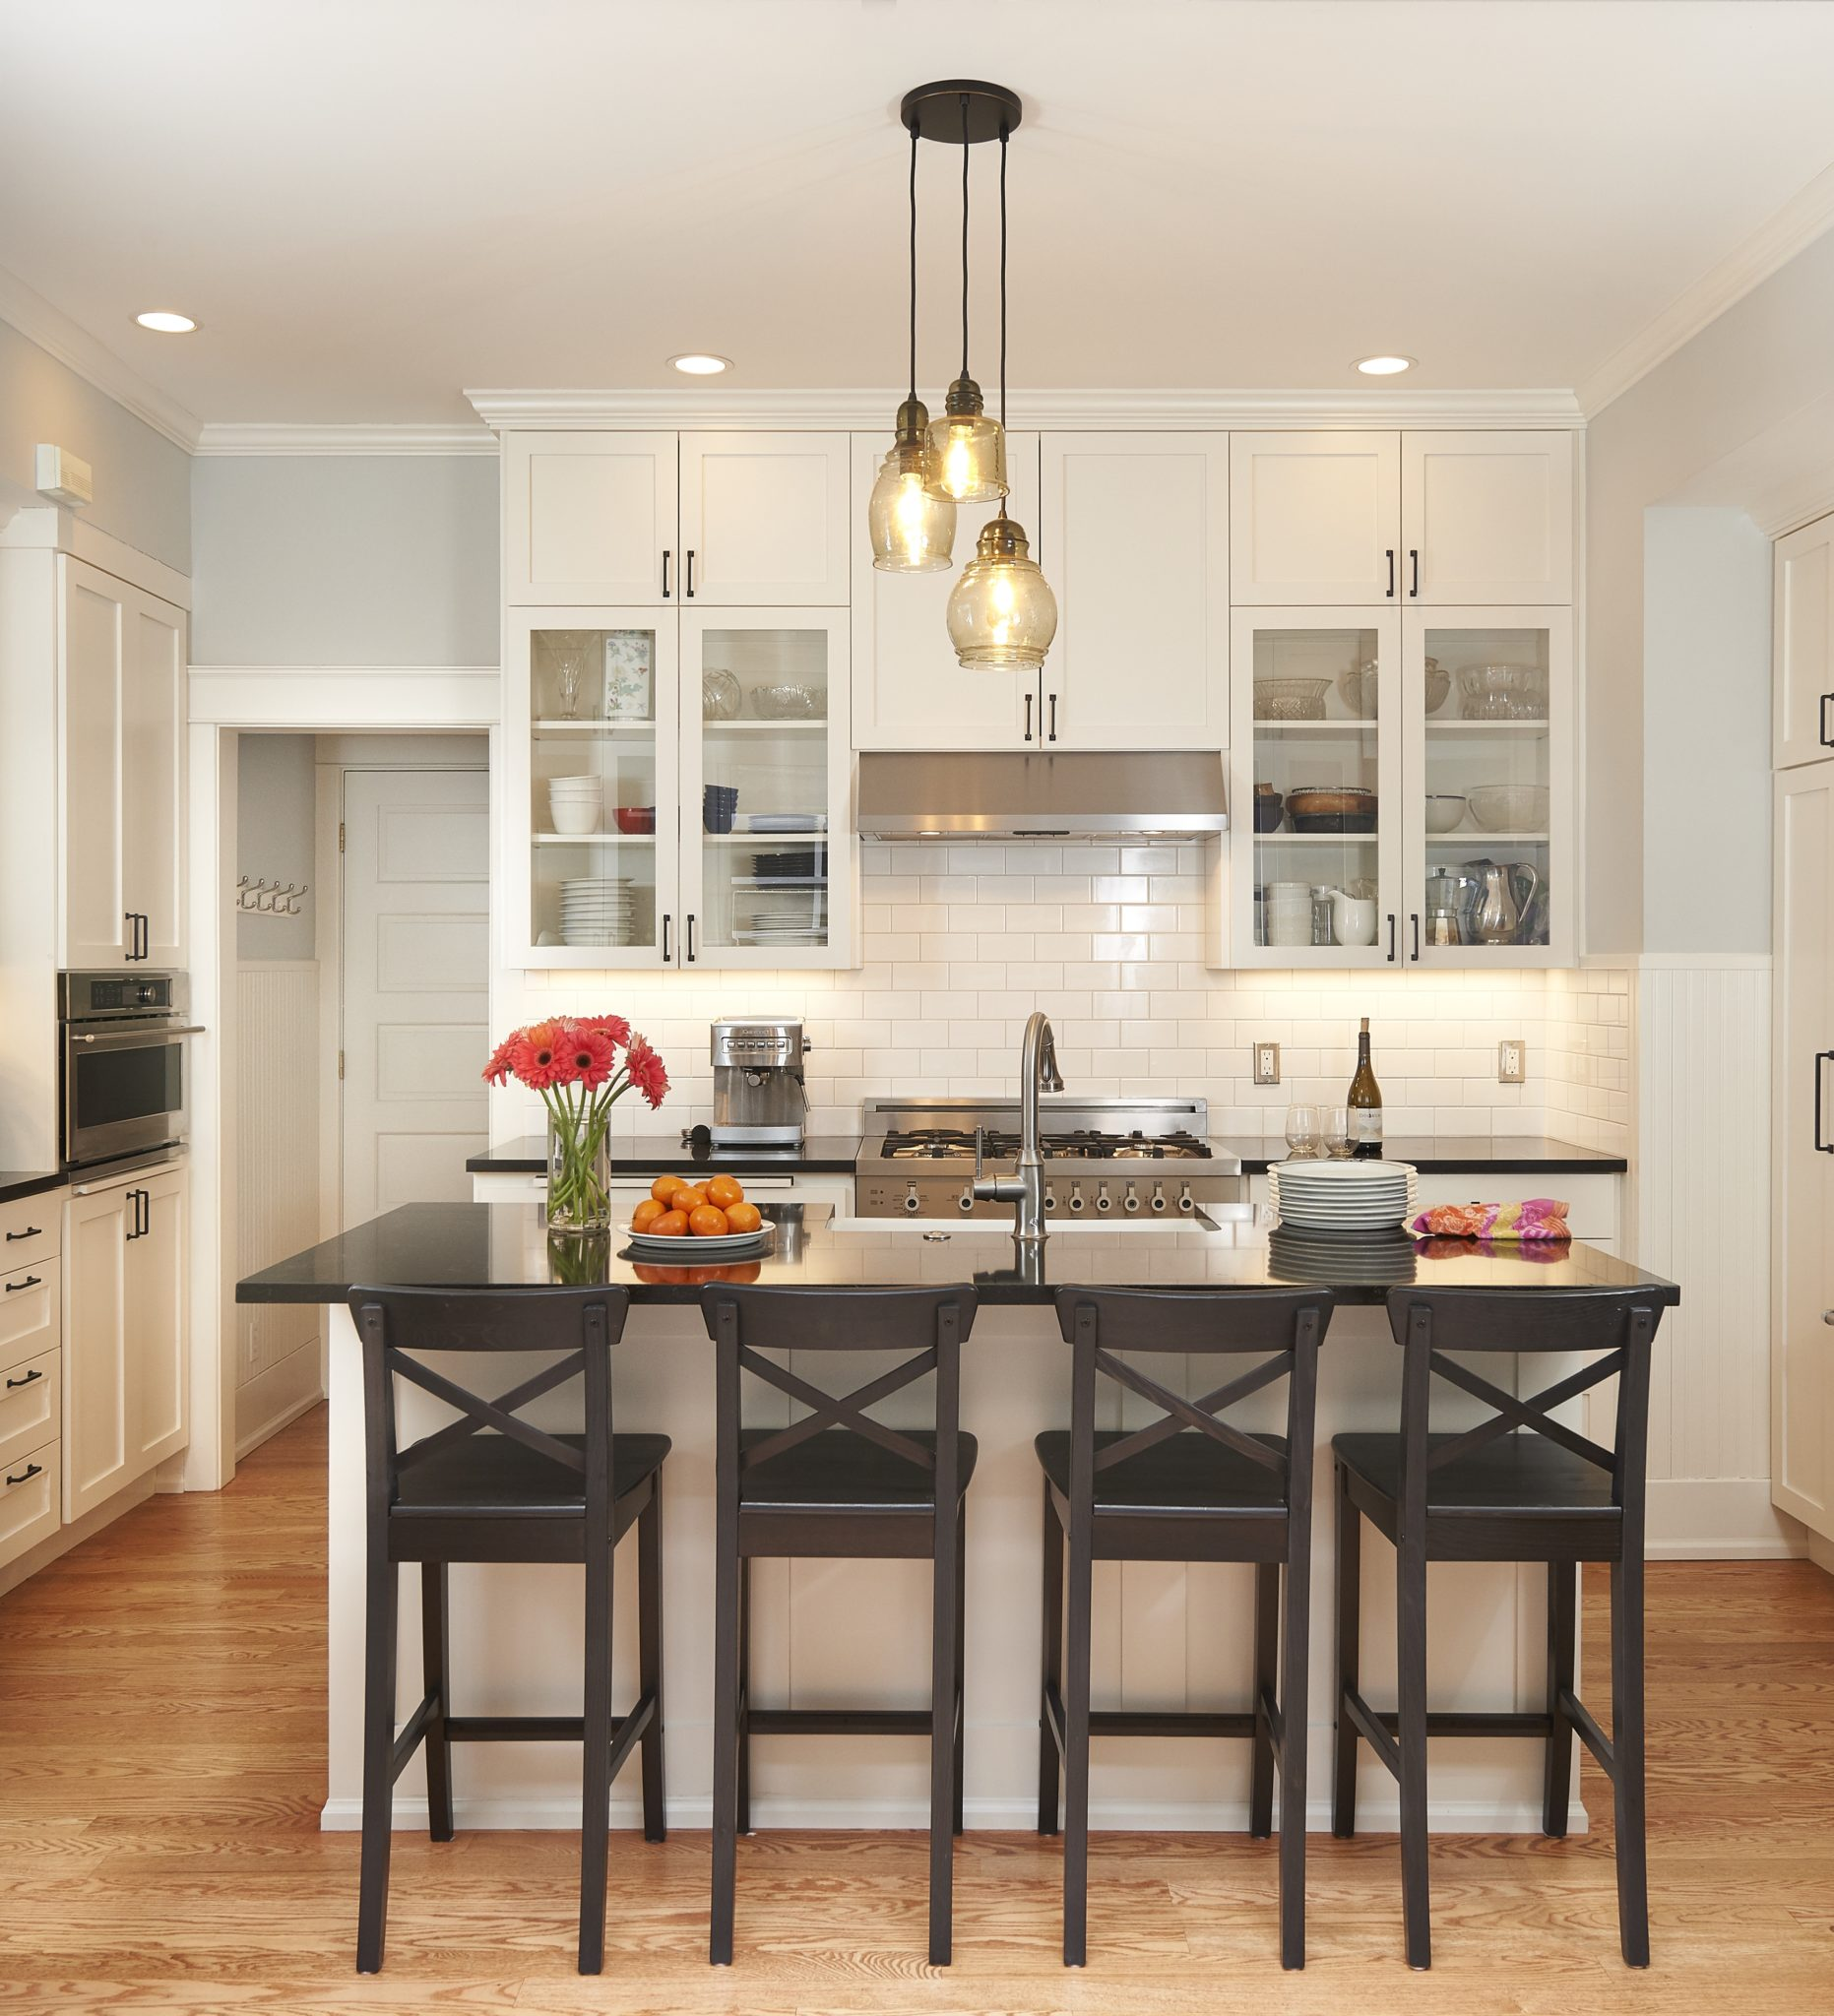 Traditional Kitchen Remodel - Seattle Architects - CTA Design Builders - Transitional, Remodel